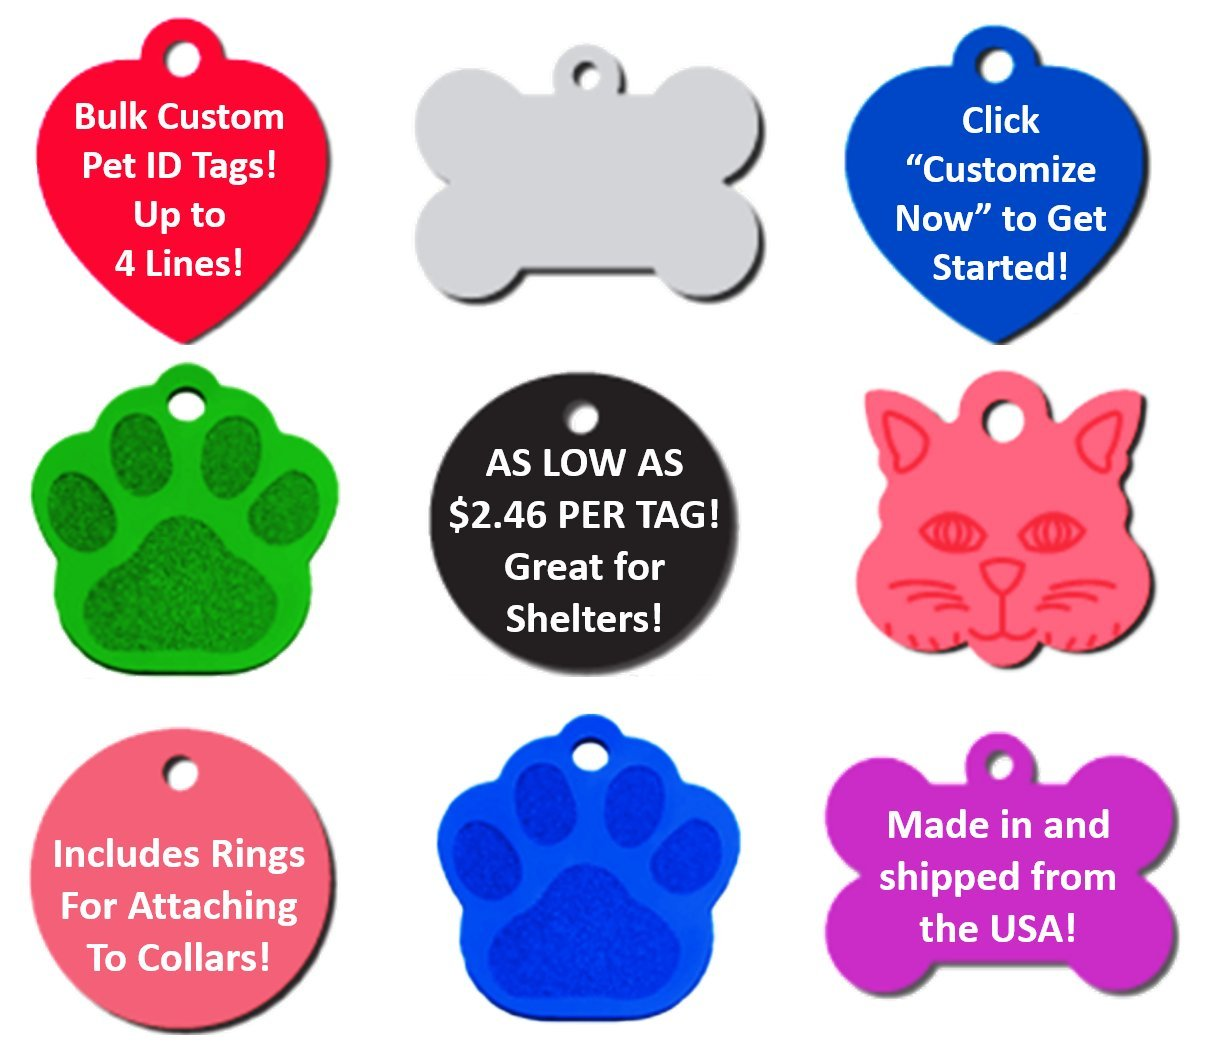 Bulk Personalized Pet ID Tags for Rescues, Shelters, Humane Societies | As Low As $2.46 Per Tag! (25-Pack ($2.96 per tag)) by TAGSGALORE